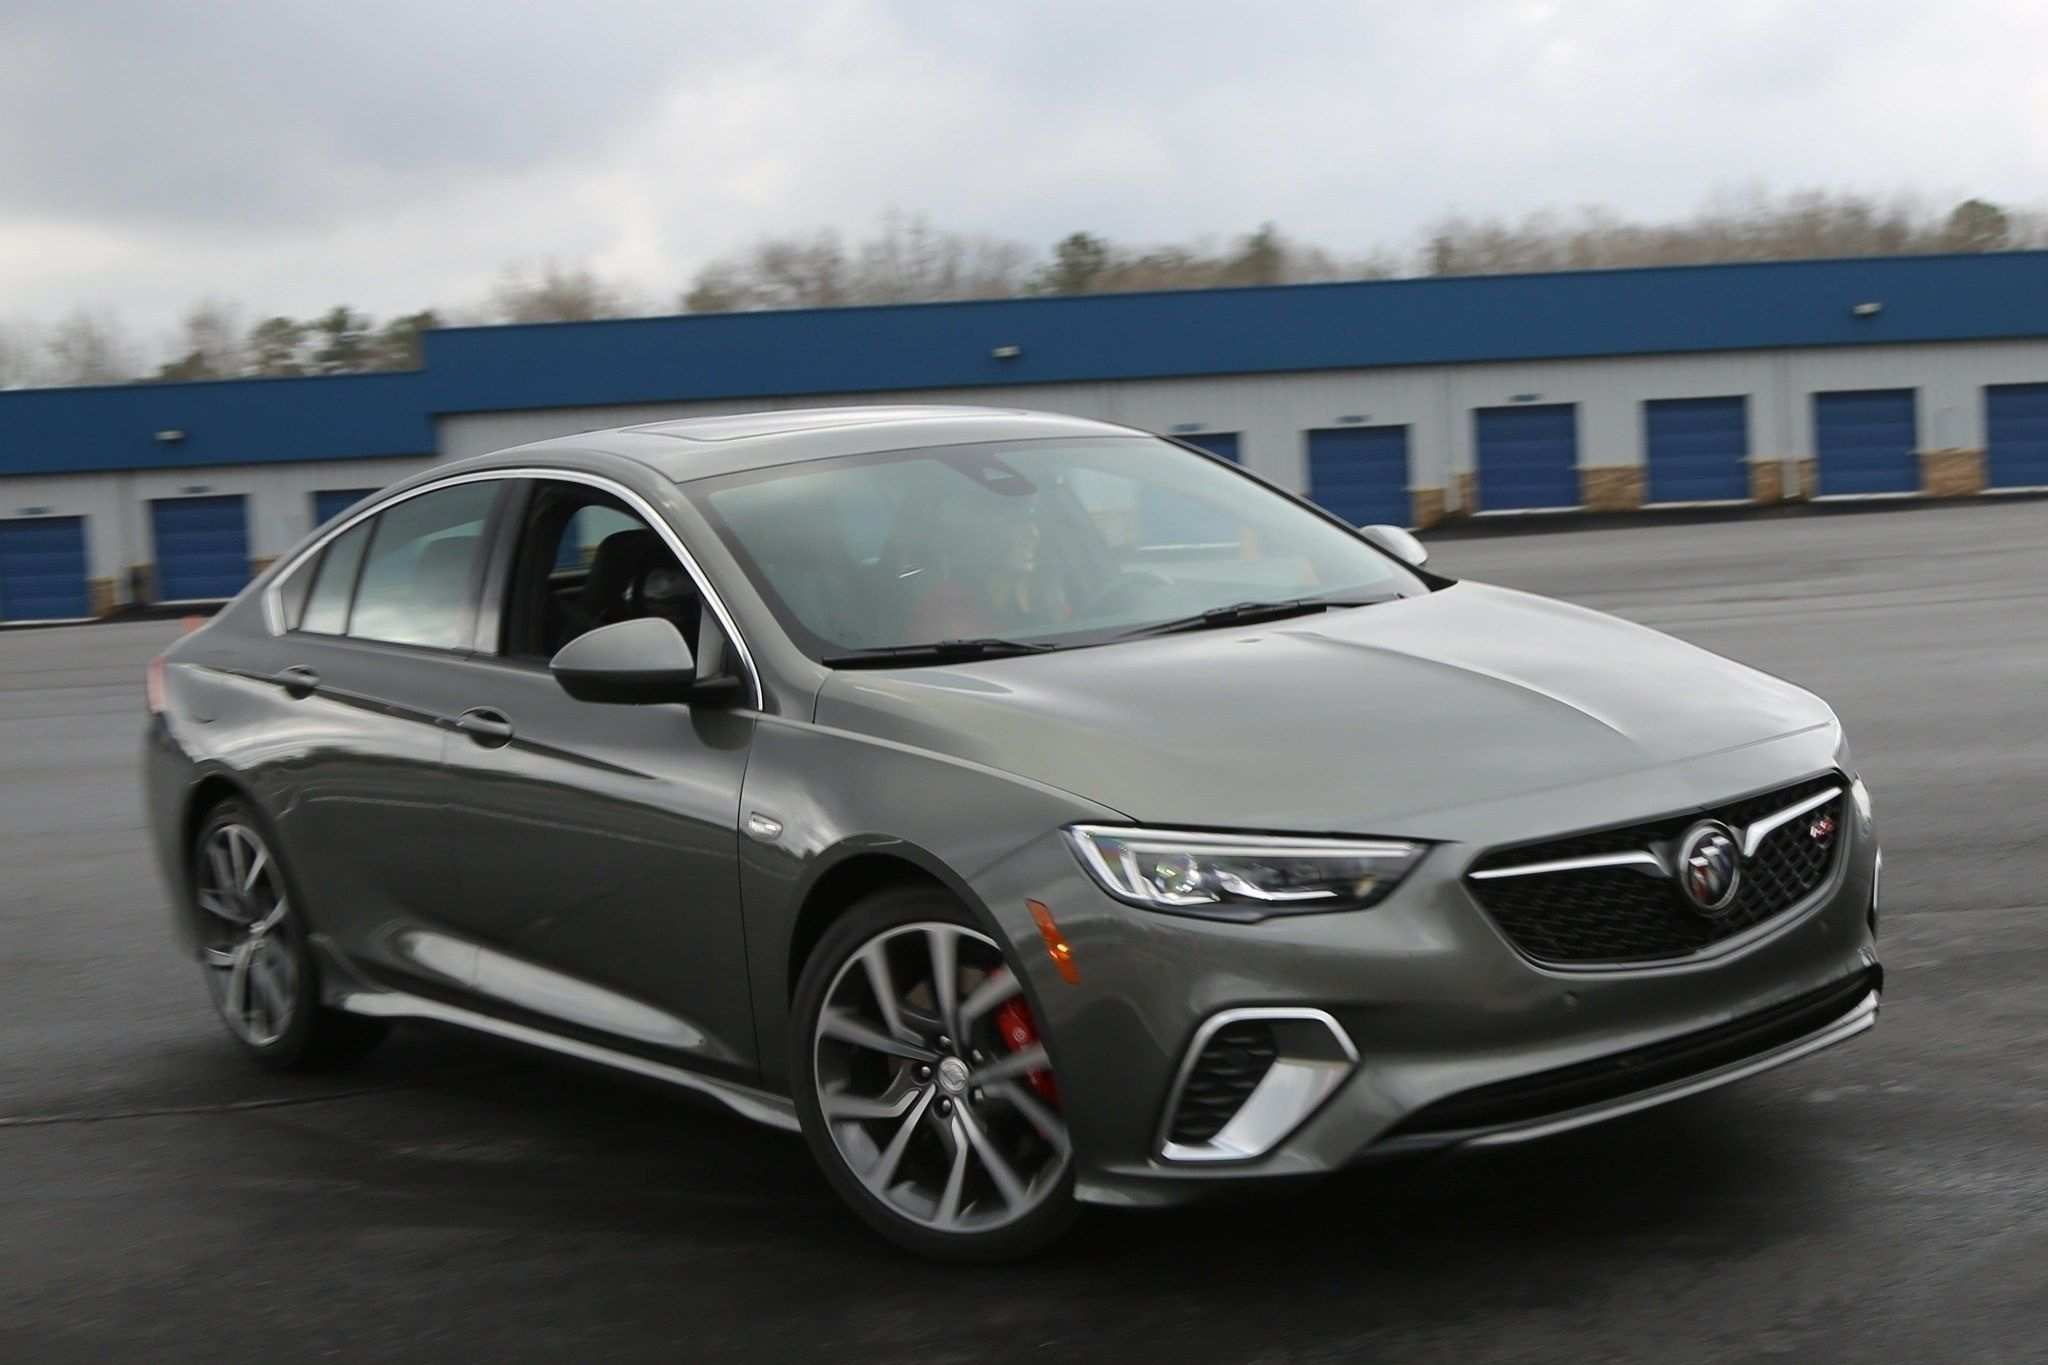 36 All New Buick Regal 2020 Prices